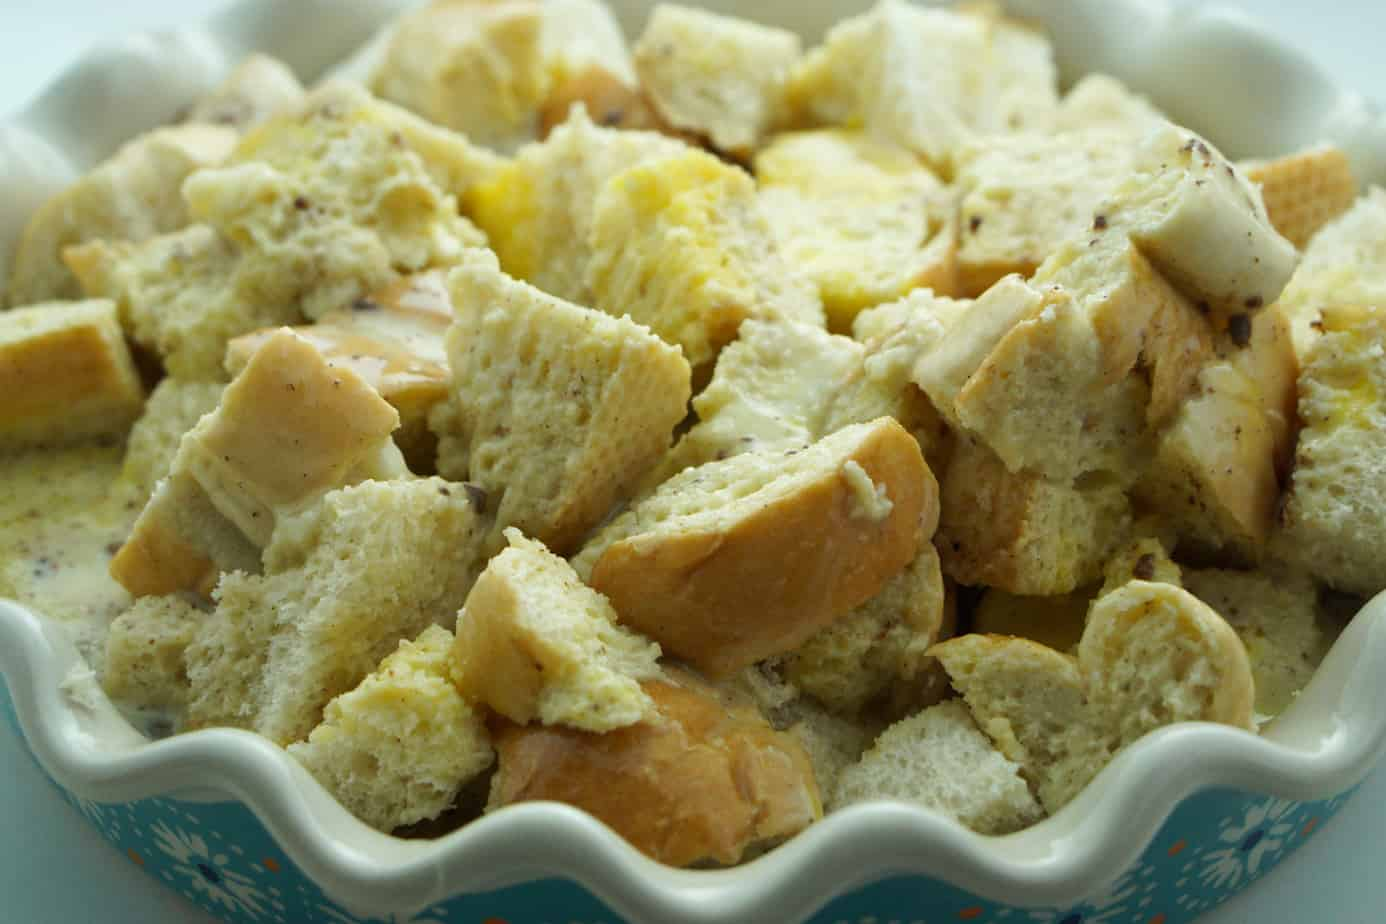 covered french toast bake 2